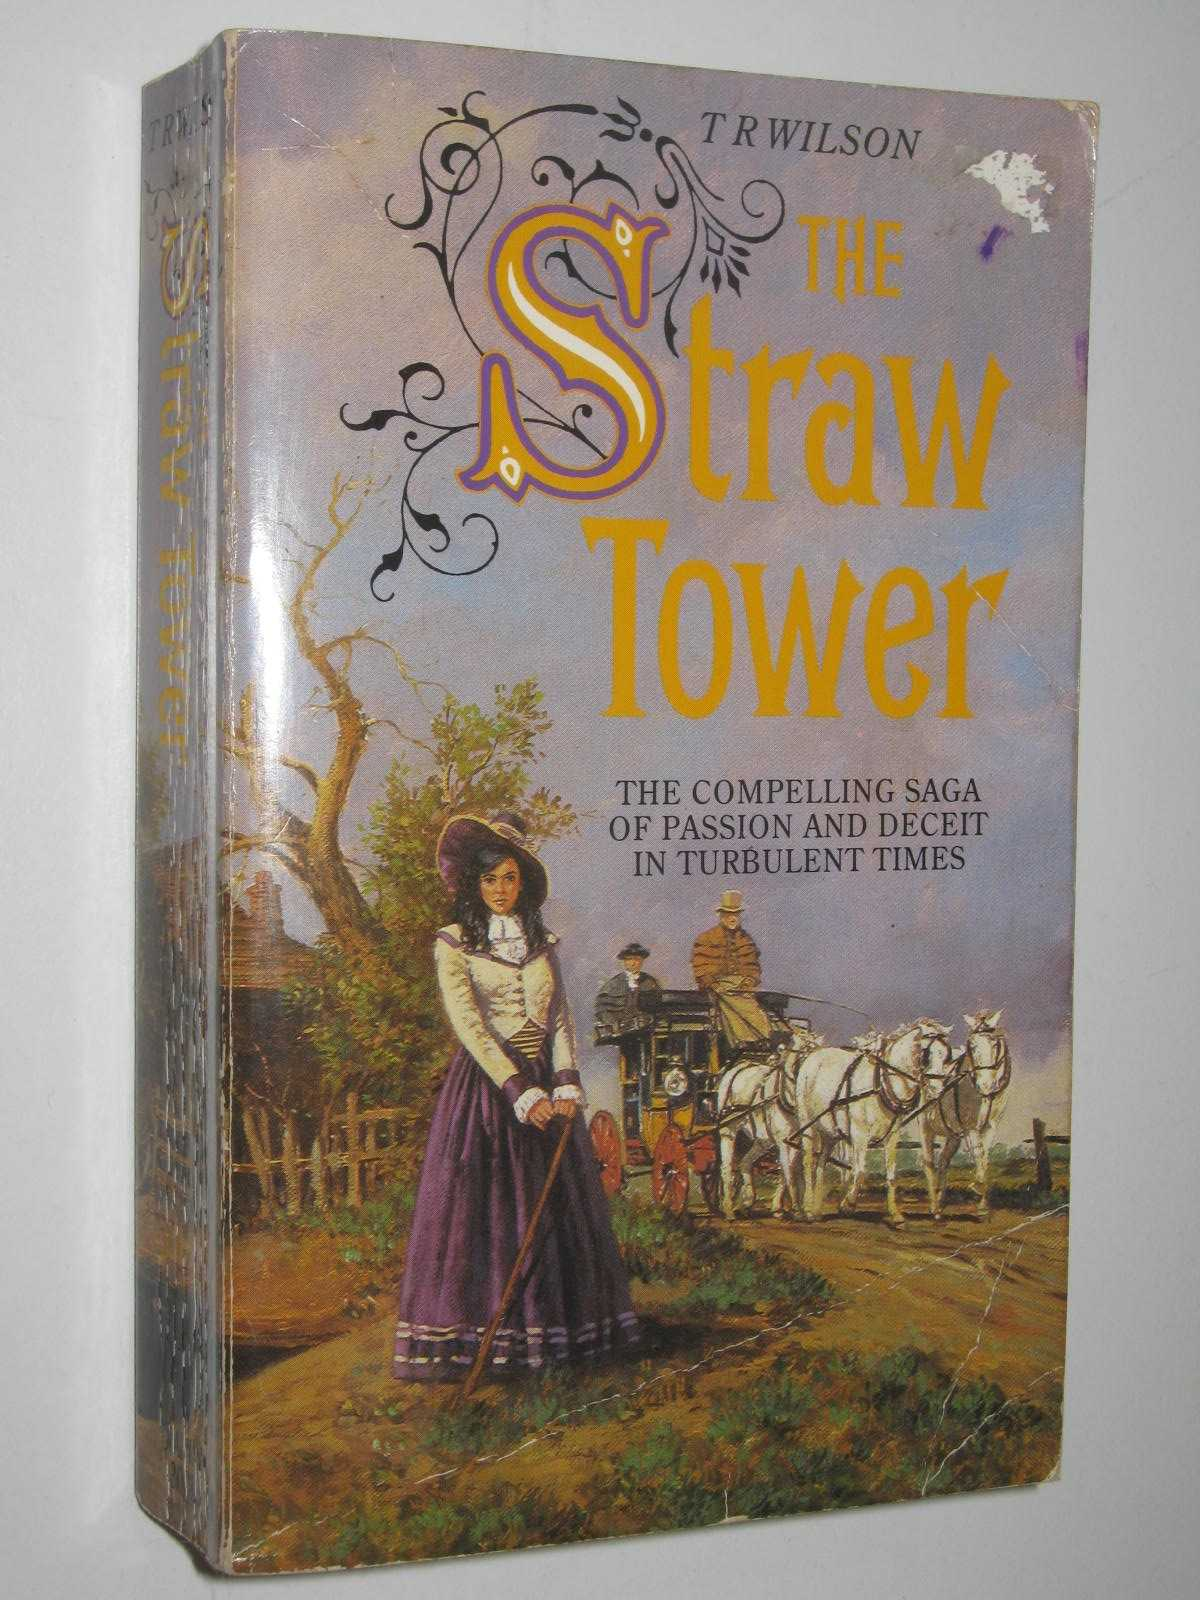 Image for The Straw Tower